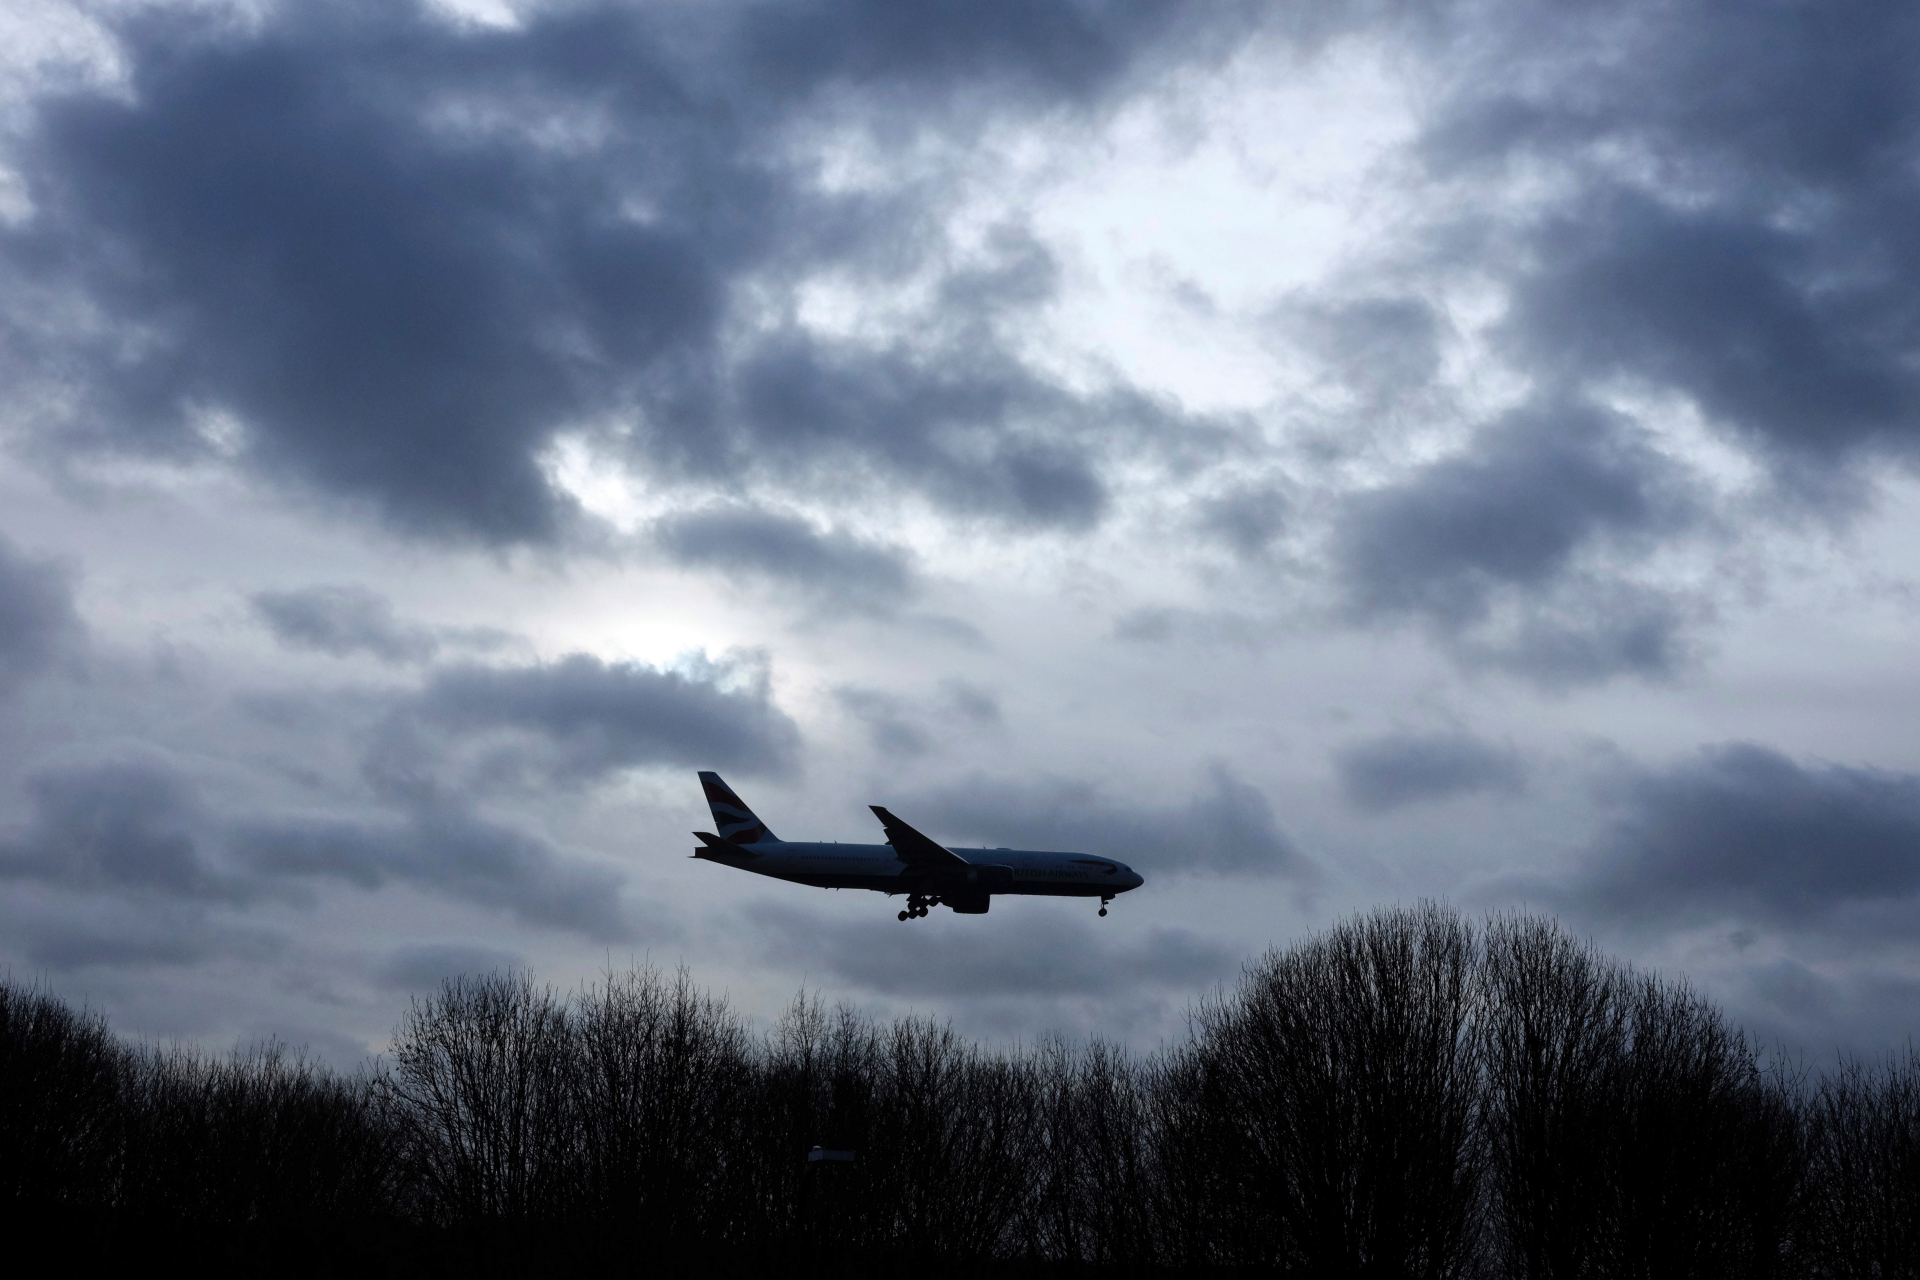 London's Gatwick Airport reopens; drone suspects